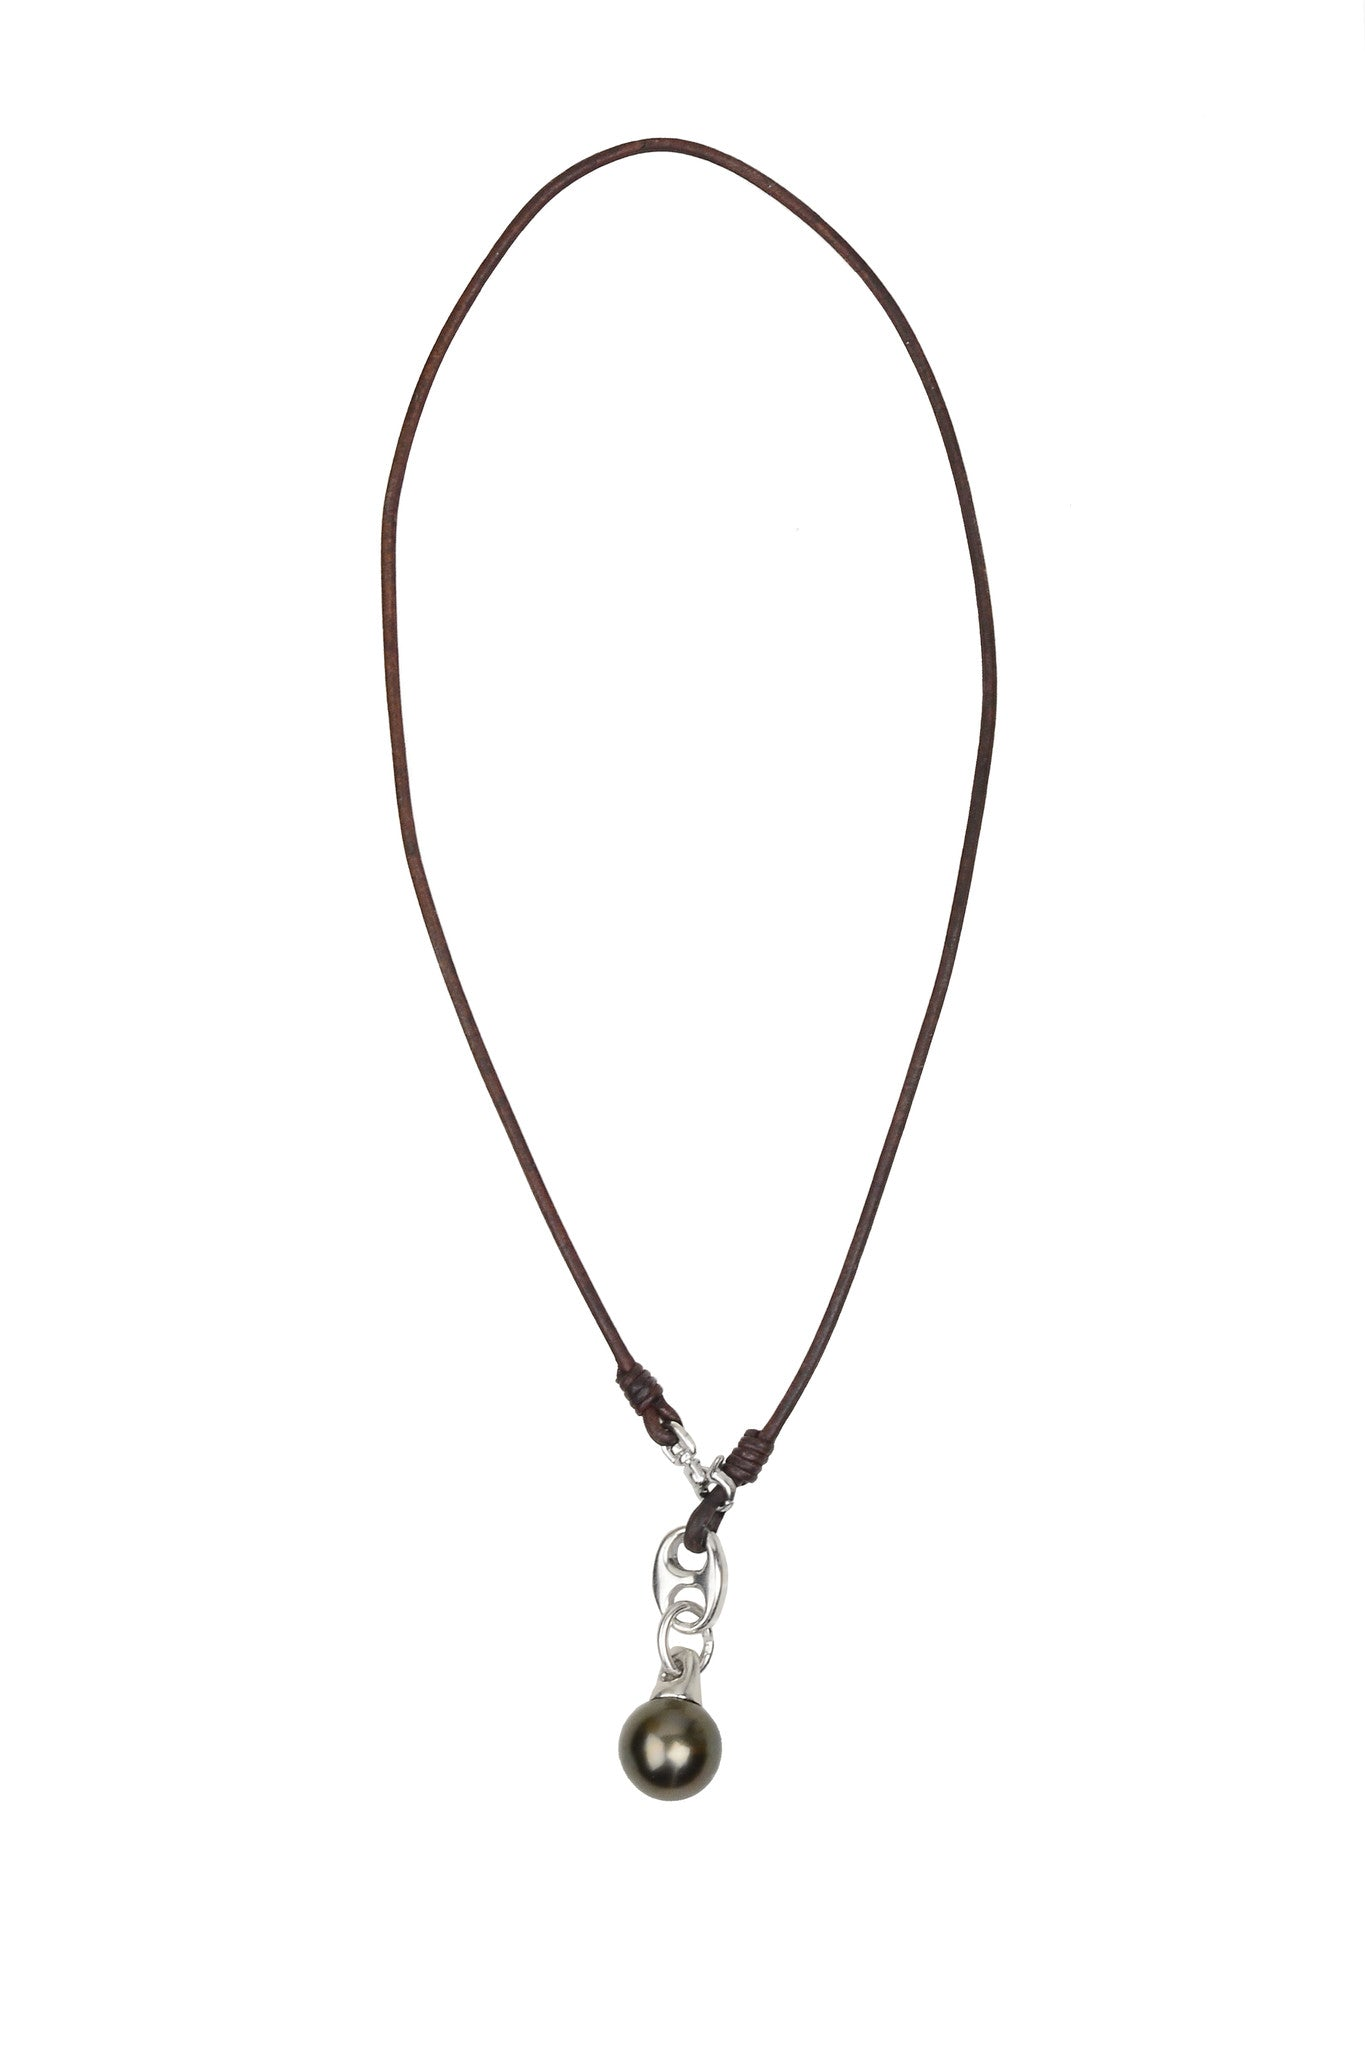 Windward Necklace - Hottest Designer Pearl and Leather Jewelry | VINCENT PEACH